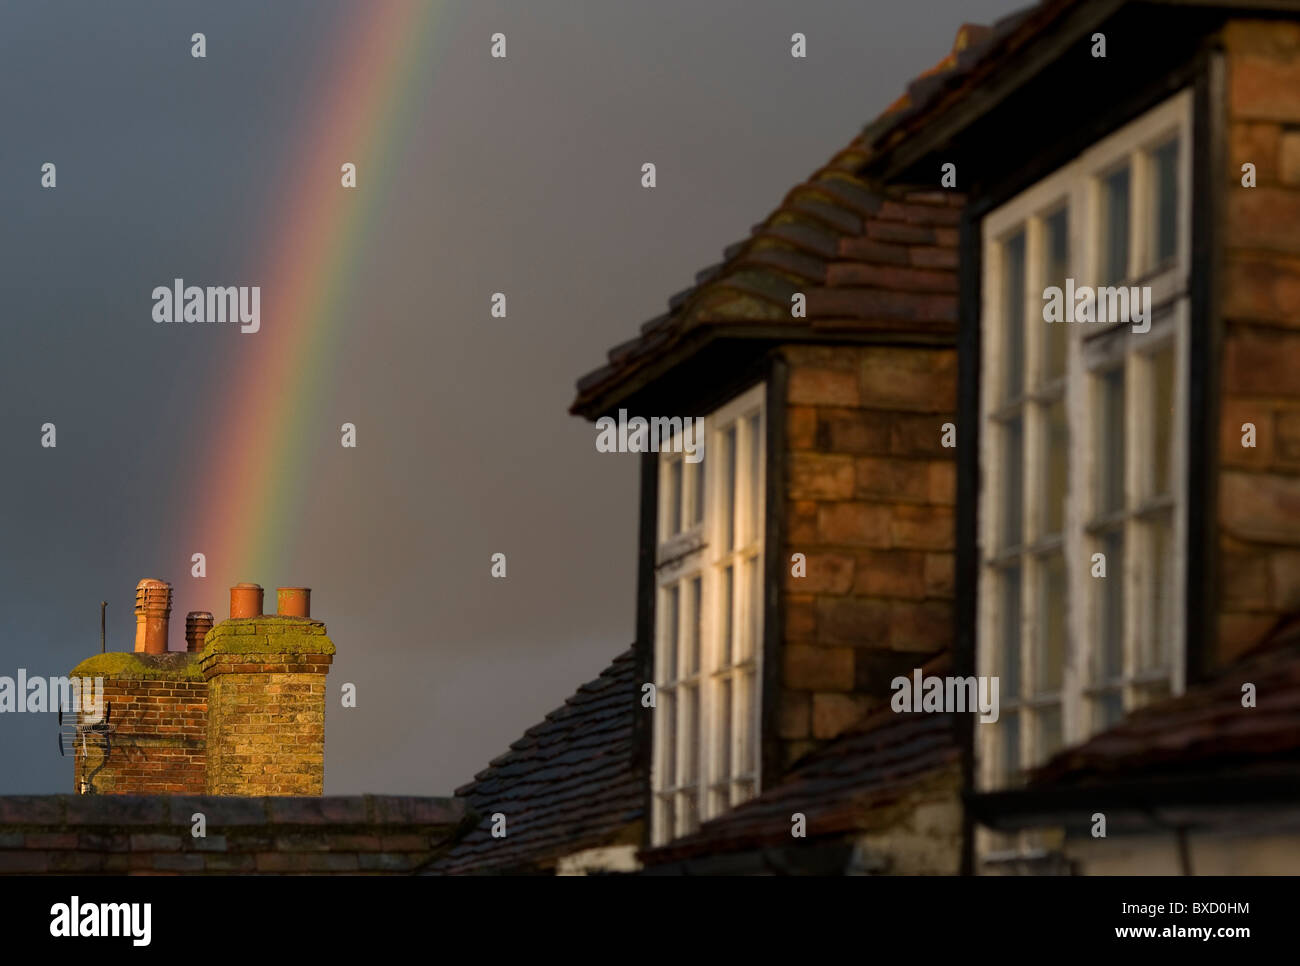 Chimney pots at the end of the rainbow, Wingham, Kent, 16th December 2010.  - Stock Image